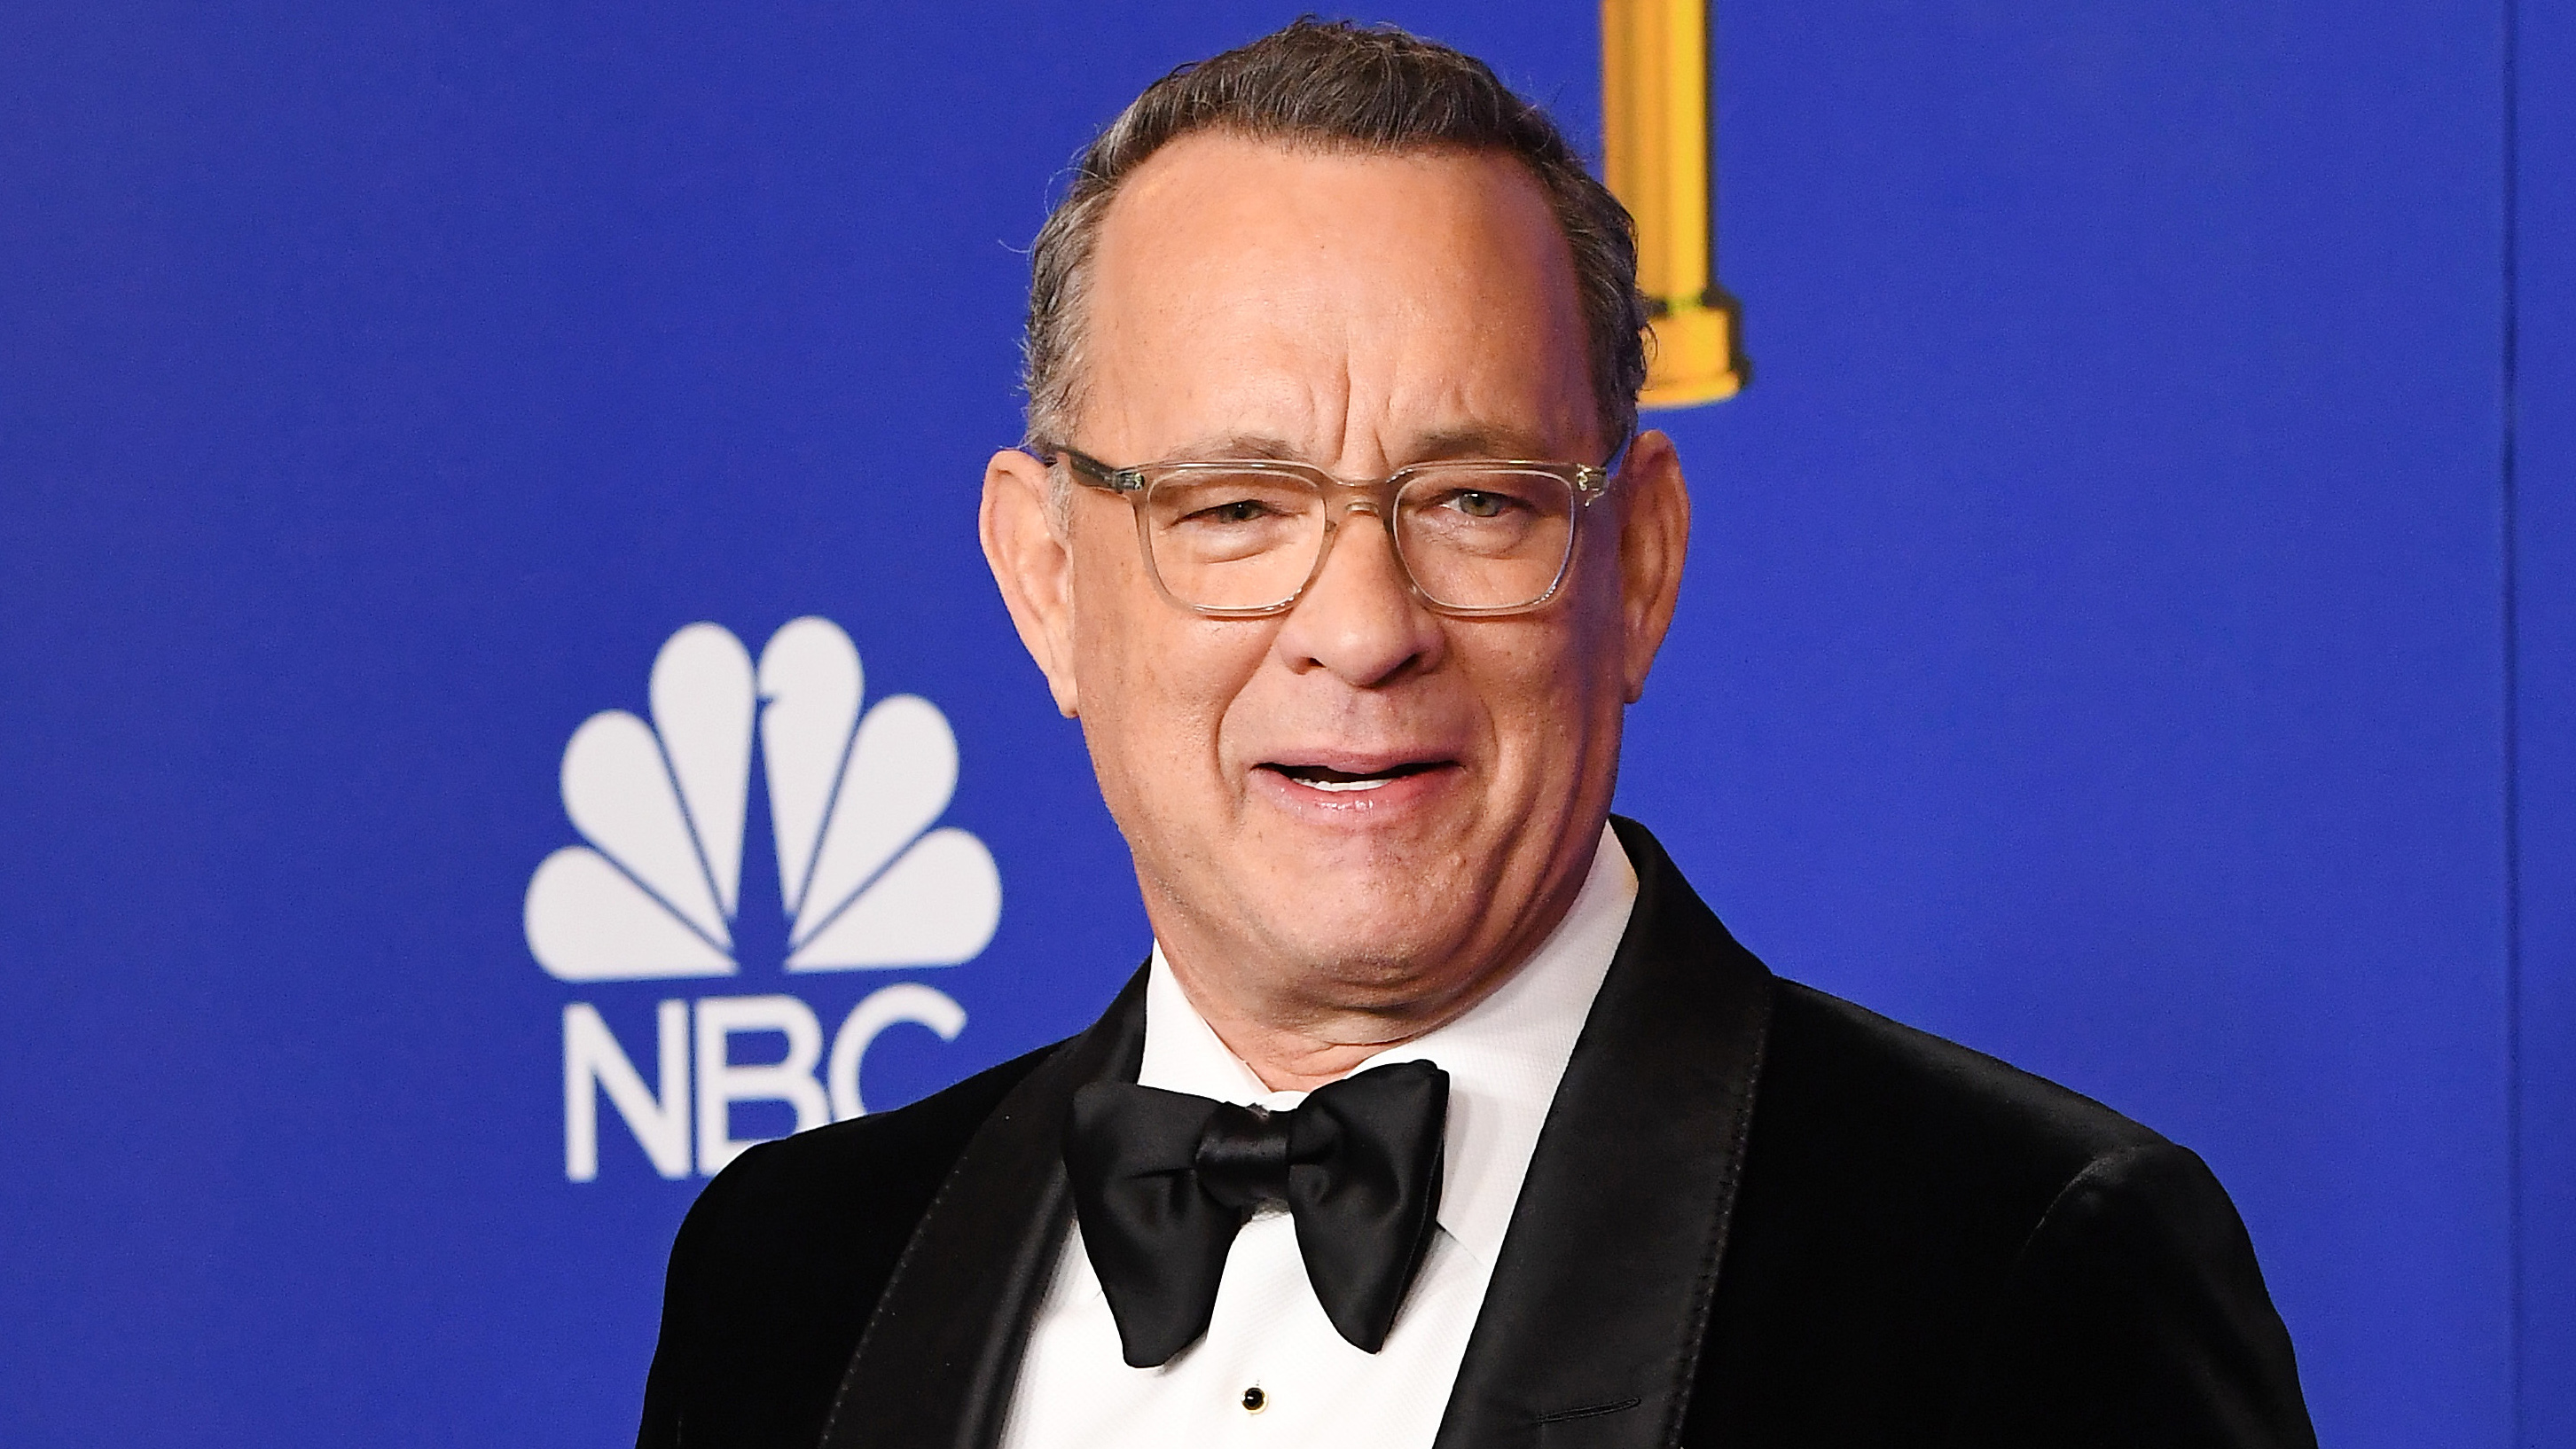 Tom Hanks addresses successful, scandal-free career at the Golden Globe Awards: 'There's no strategy to it'